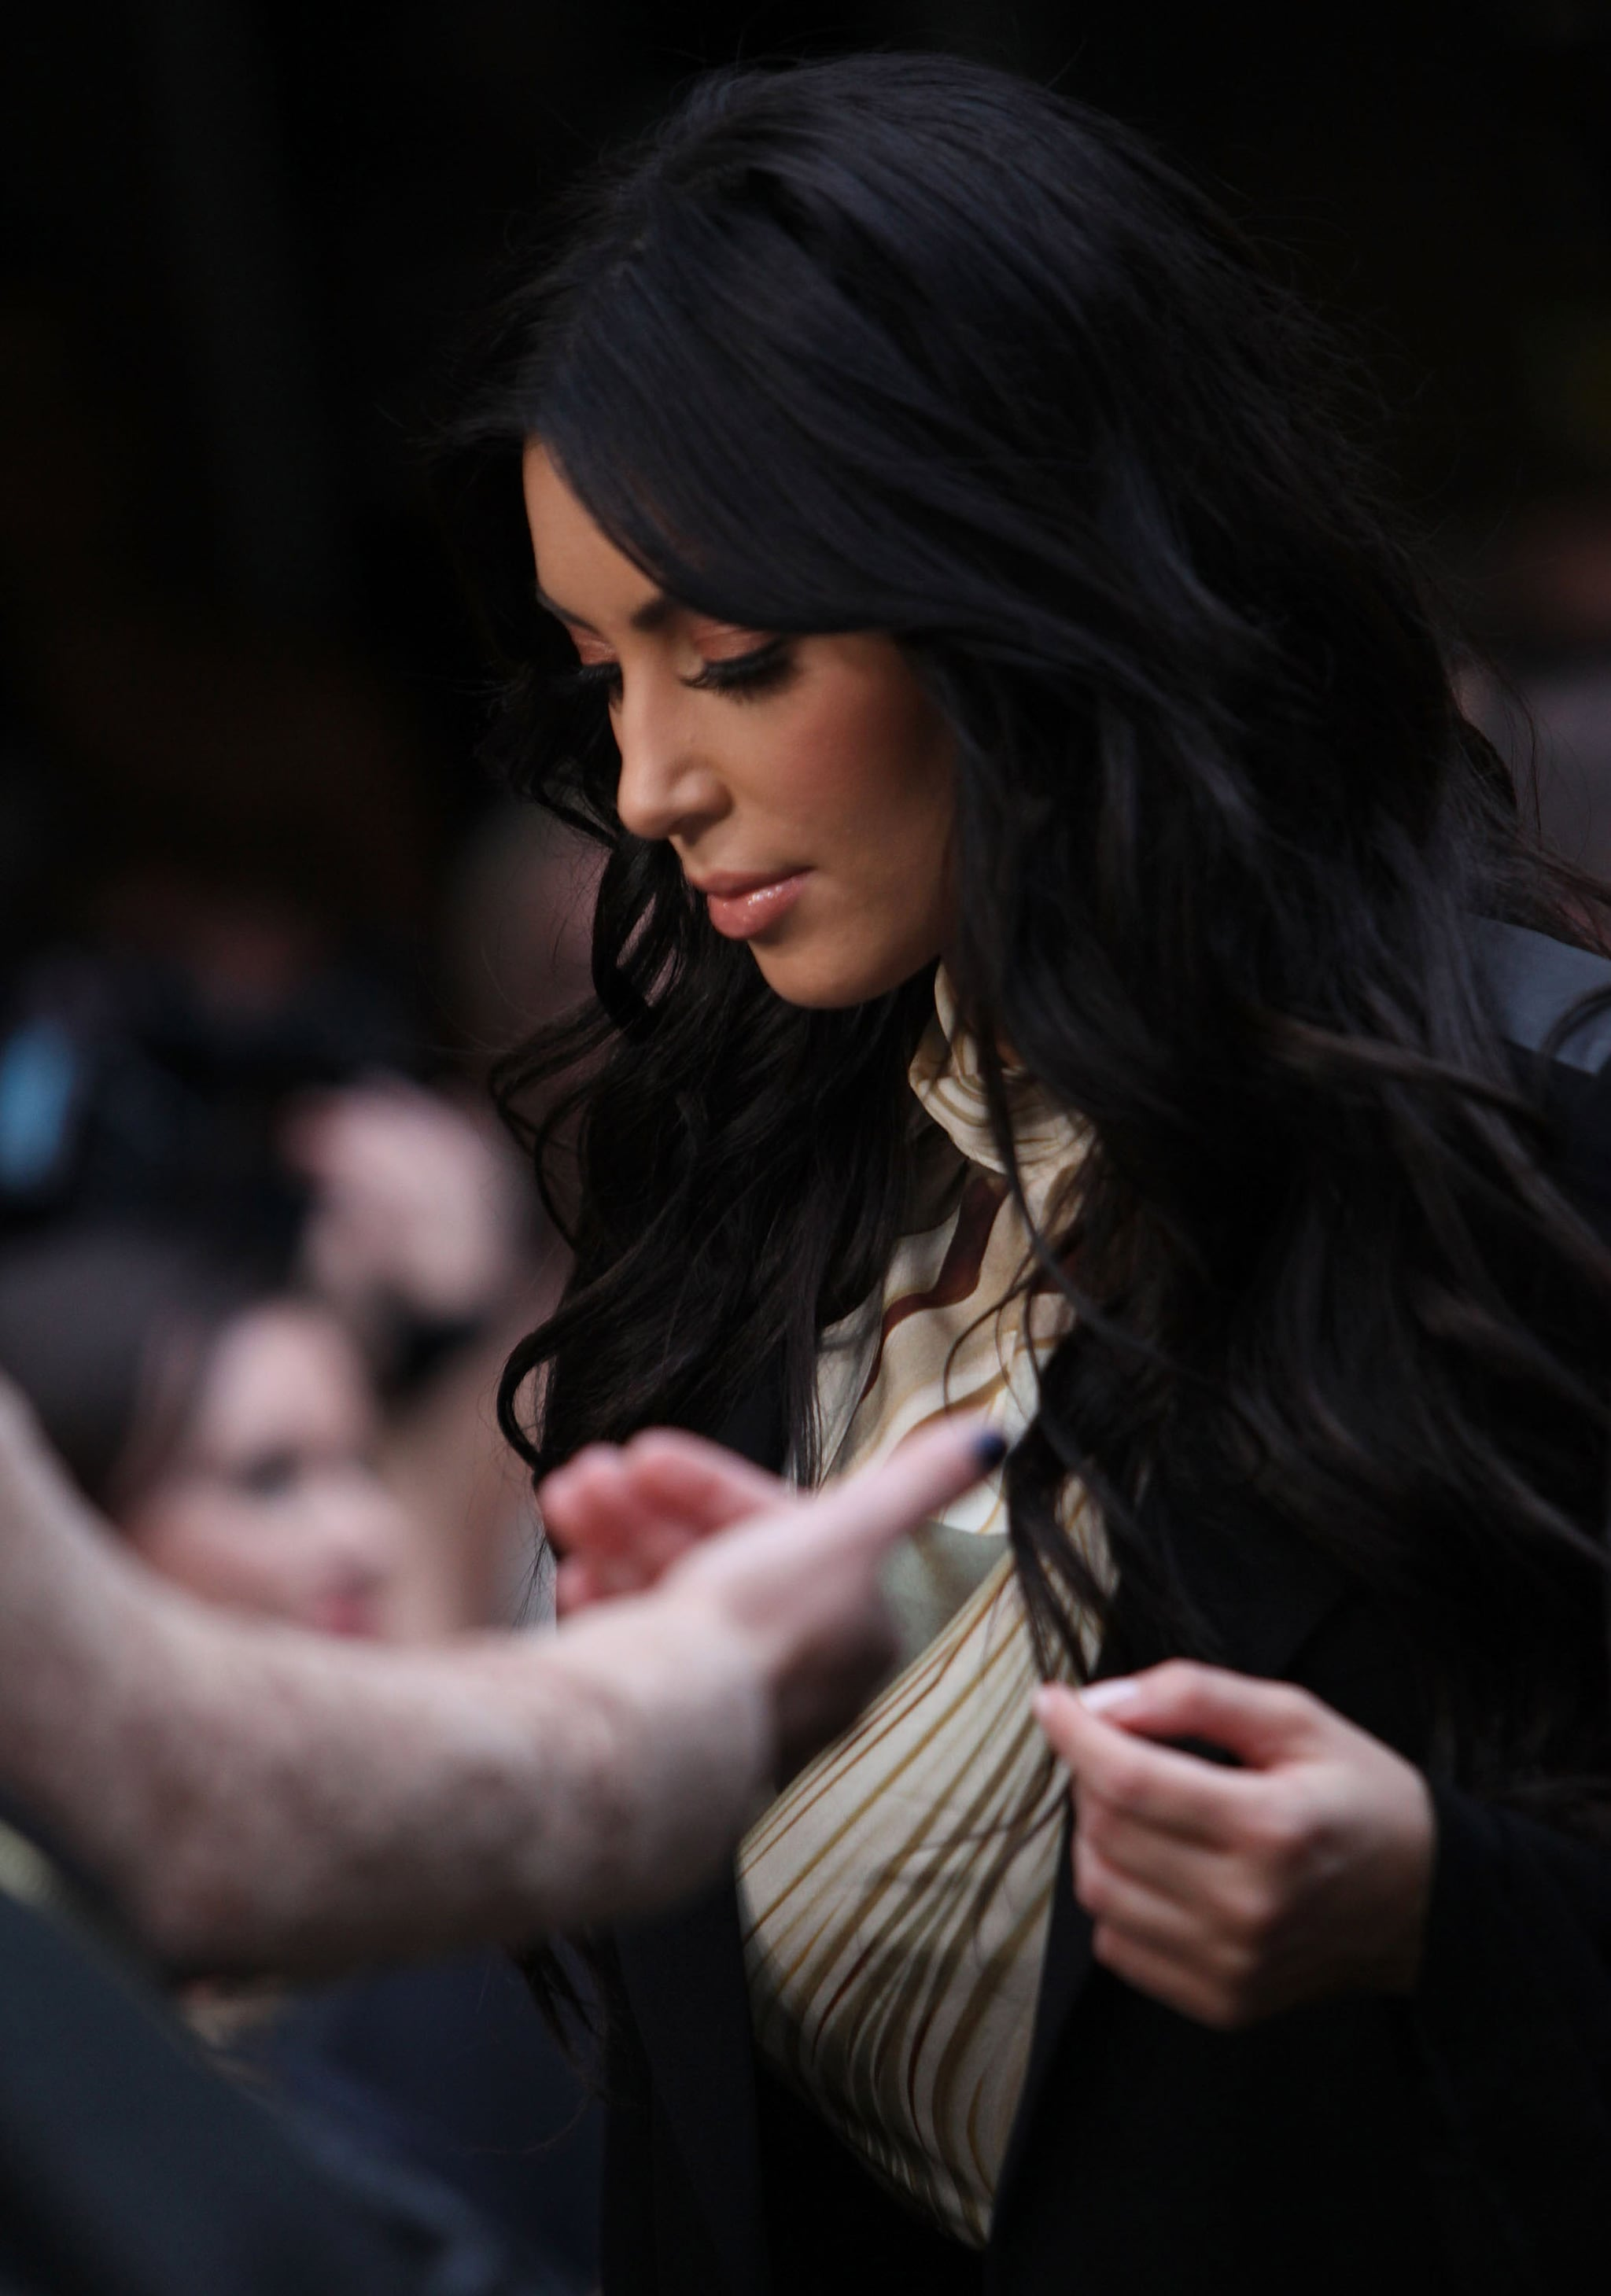 Kim Kardashian's fans came out in droves in Sydney.